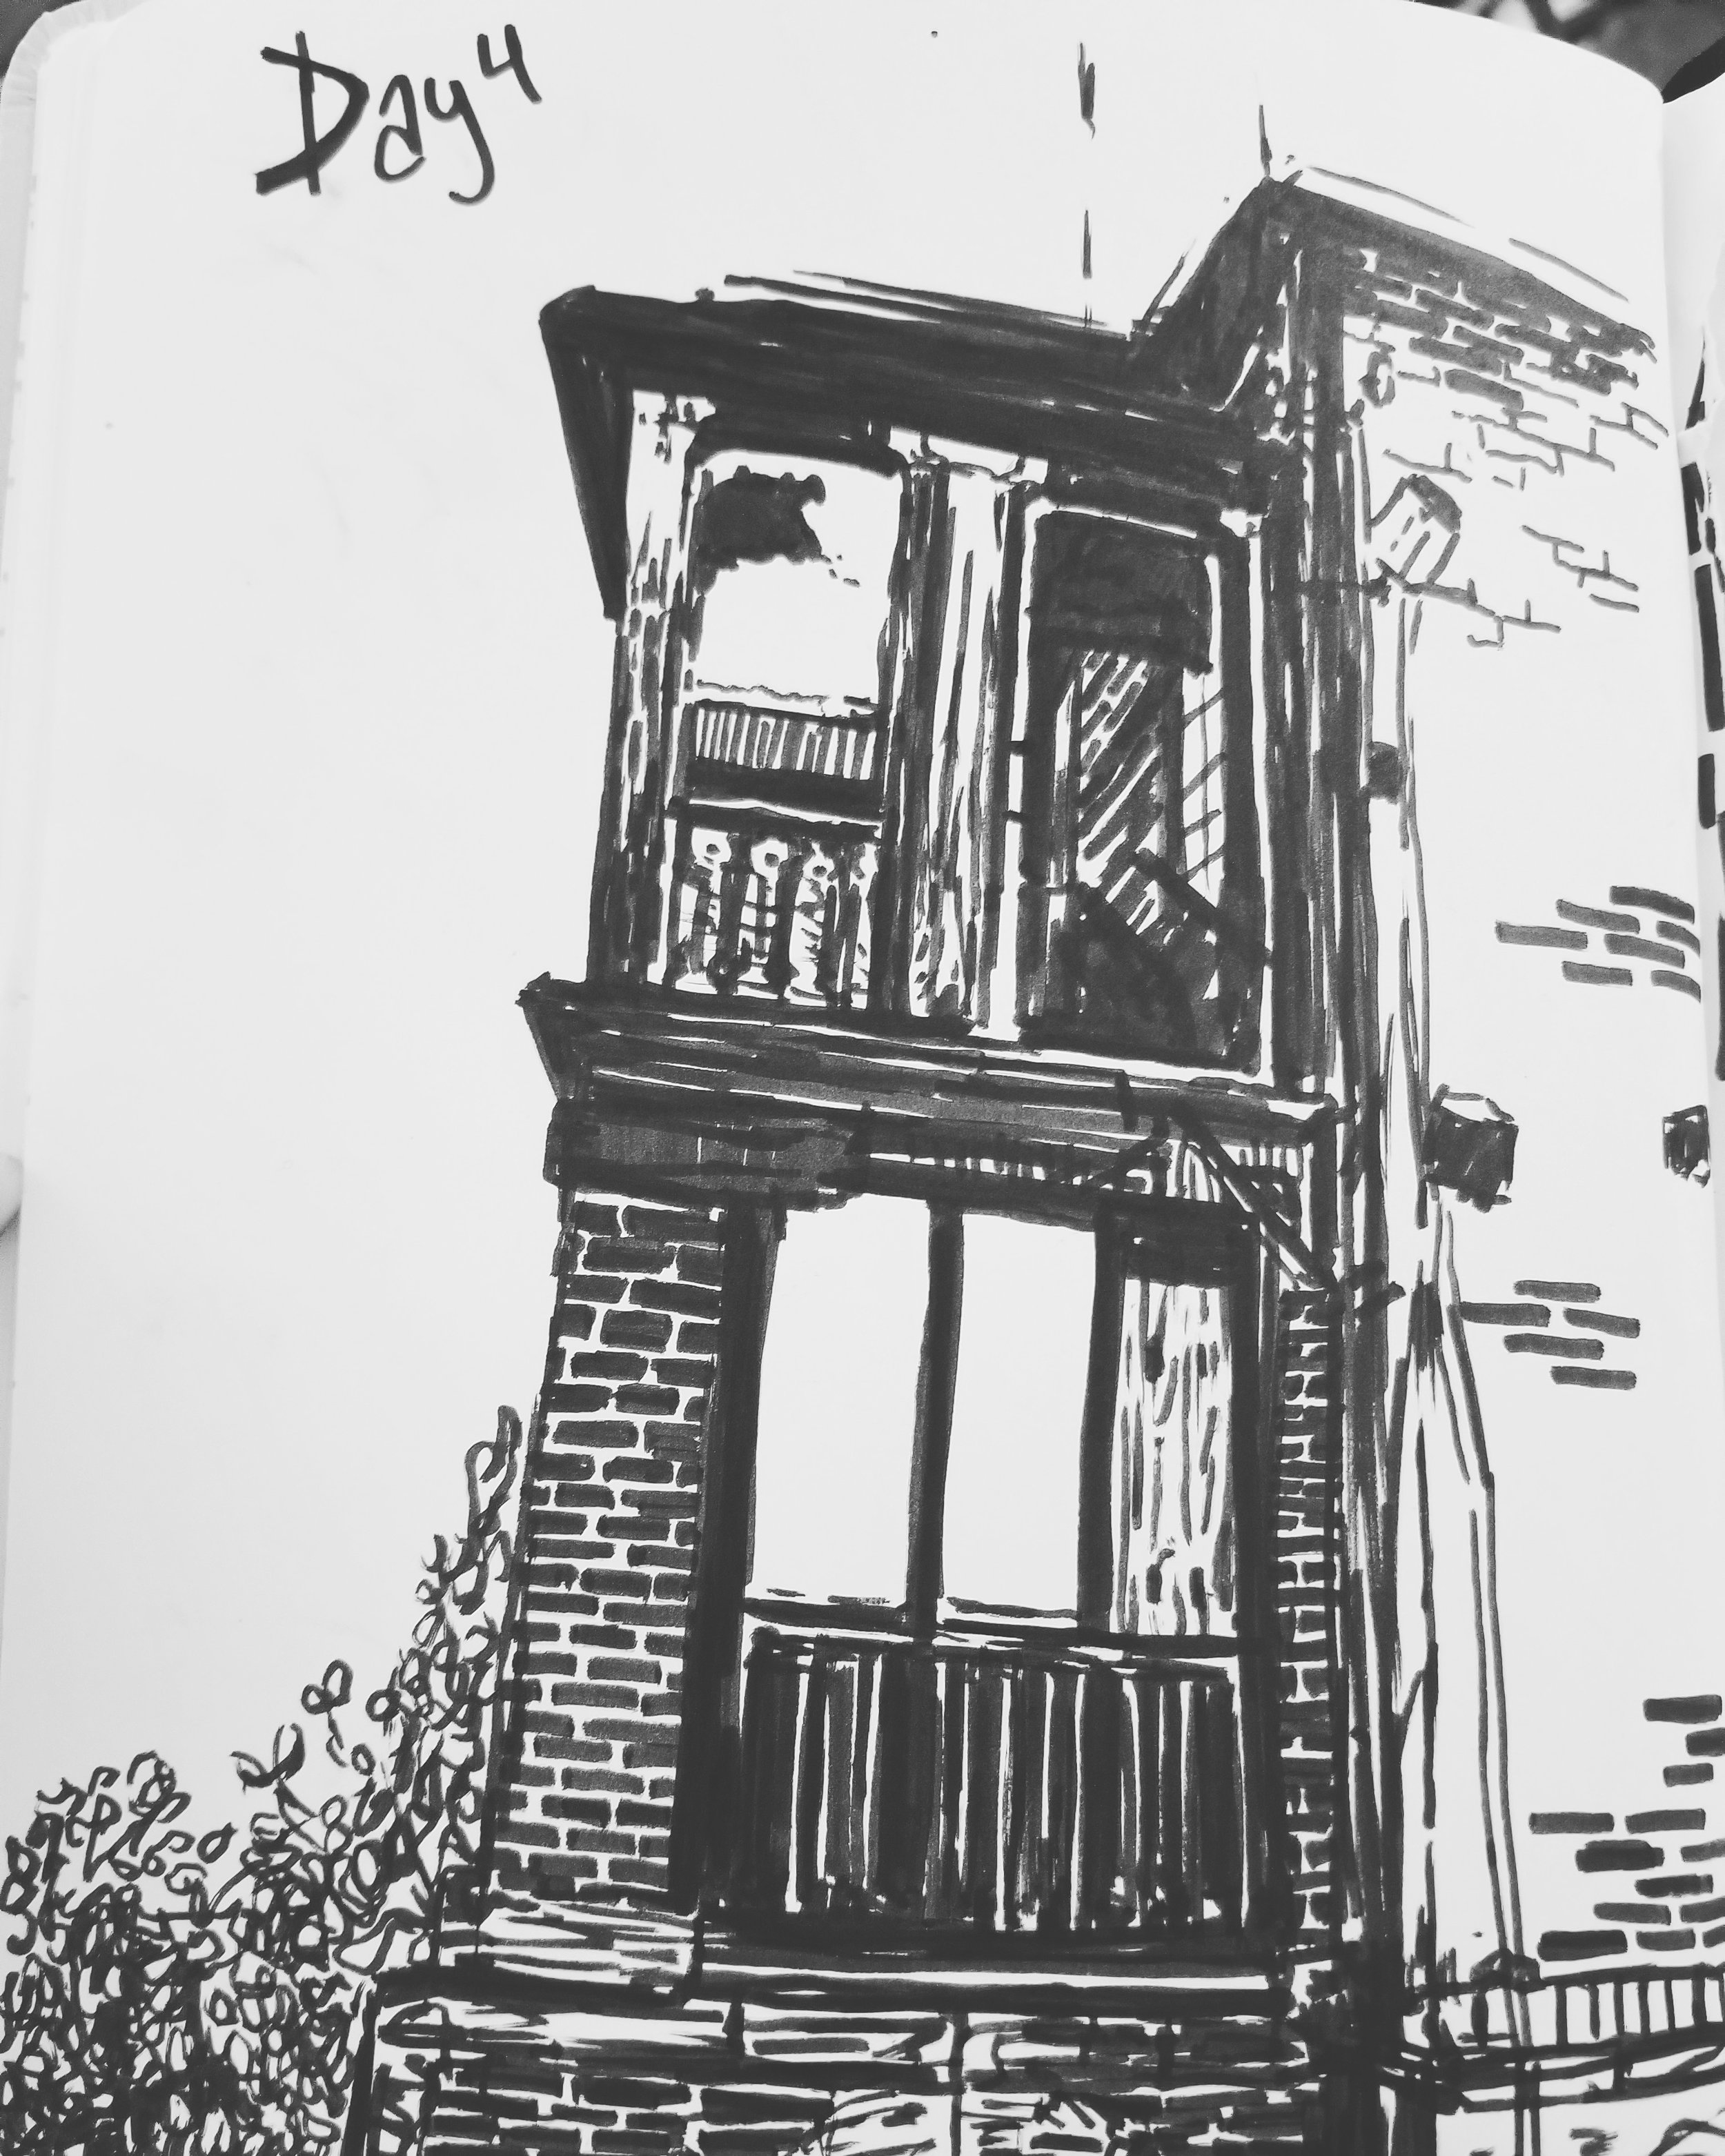 day 3- pen drawing from an old building my friend saw, from reference